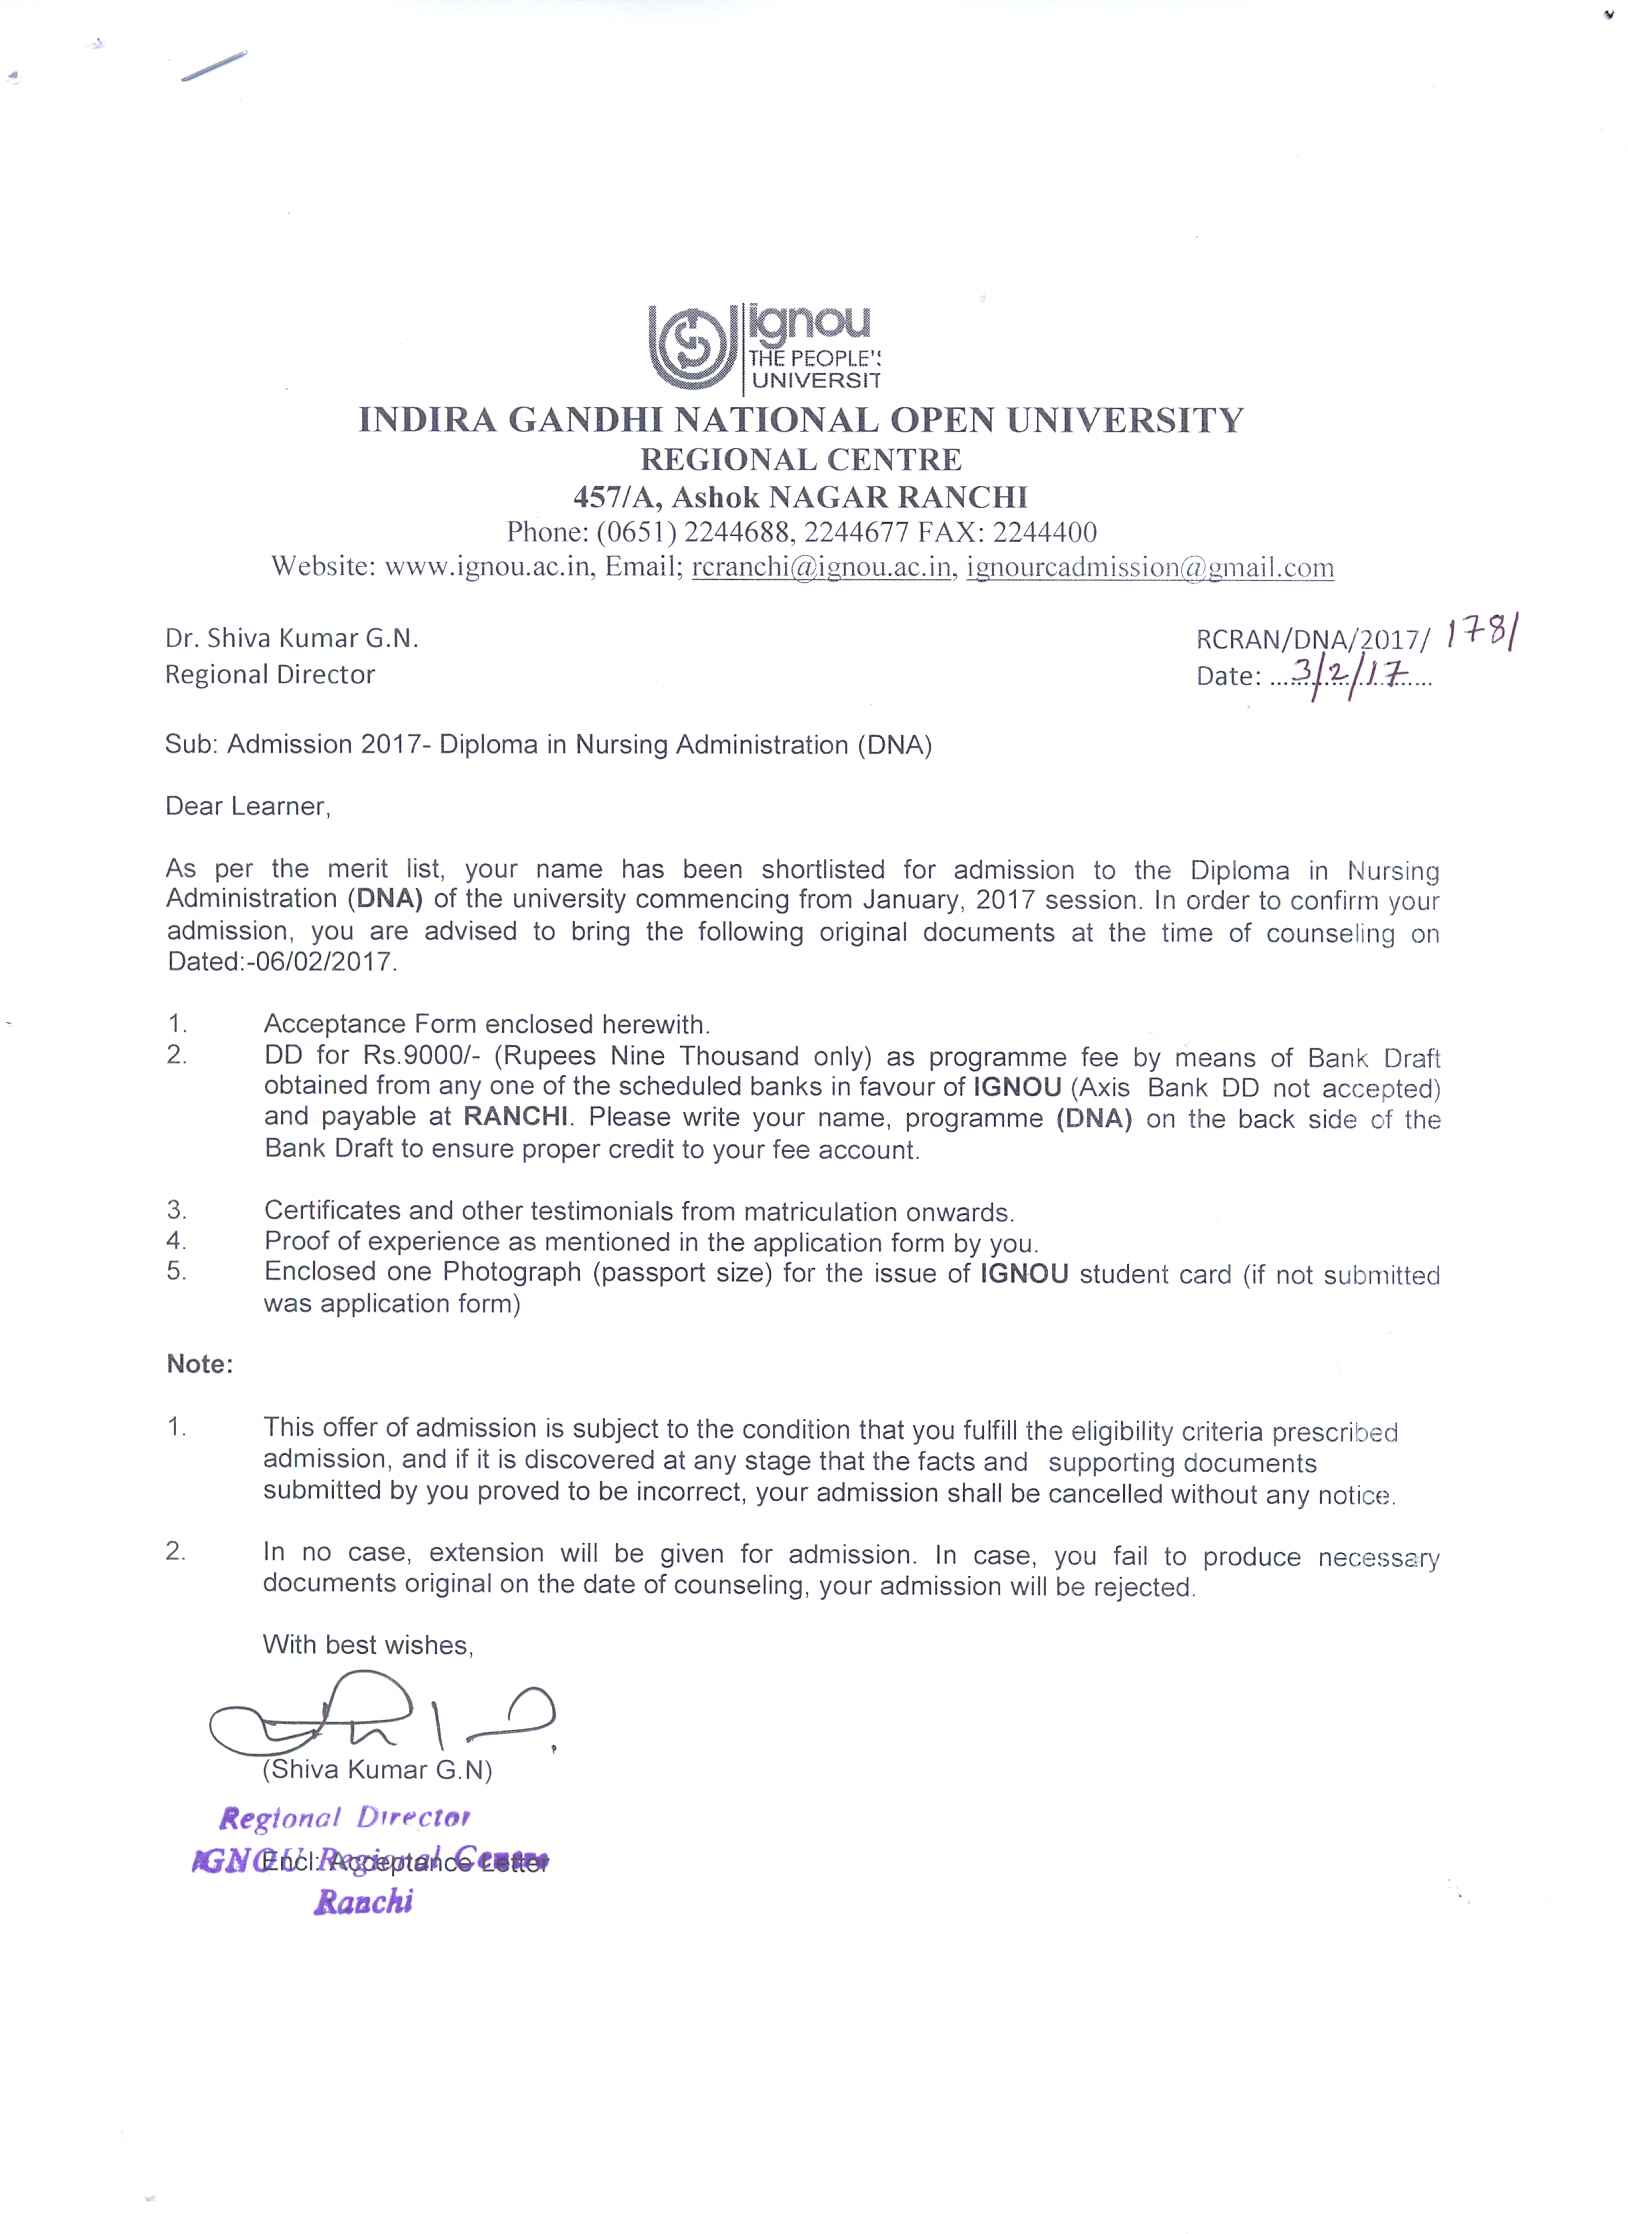 IGNOURCRanchi Announcements Latest Offer Letter Acceptance – Offer Letter